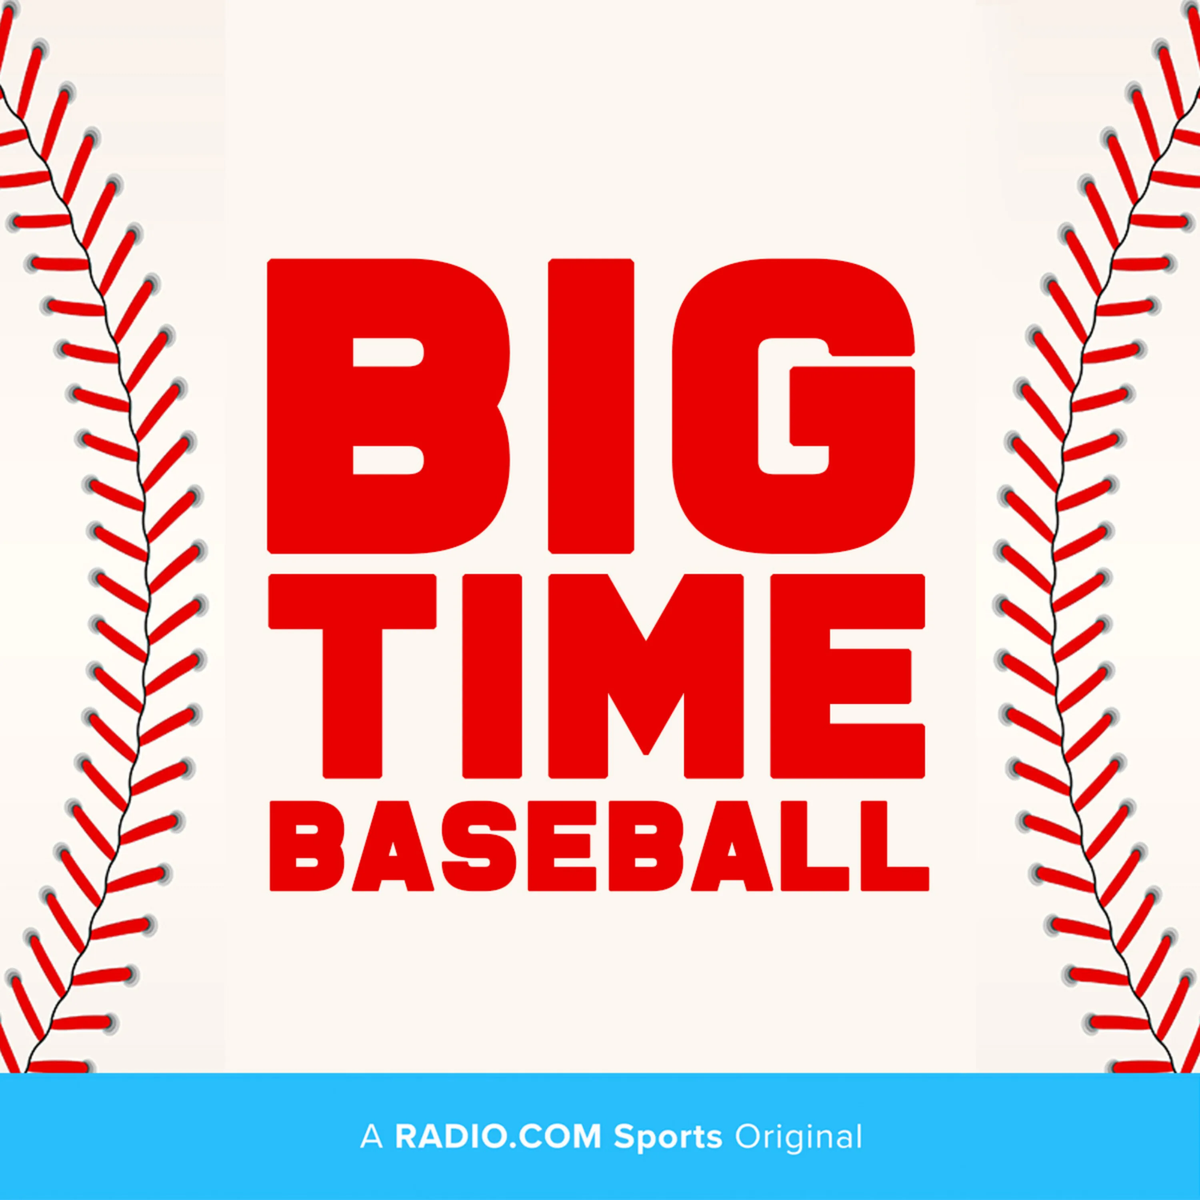 Joining @JonHeyman & @tonygwynnjr on this episode of @RDCSports' #BigTimeBaseball is Jerry Hairston, Jr (@TheRealJHair).  COVID-19 outbreaks in the #Marlins & #Cardinals clubhouses have #MLB players furious.  https://t.co/zryiJphDvP https://t.co/H4gxf5f6zB